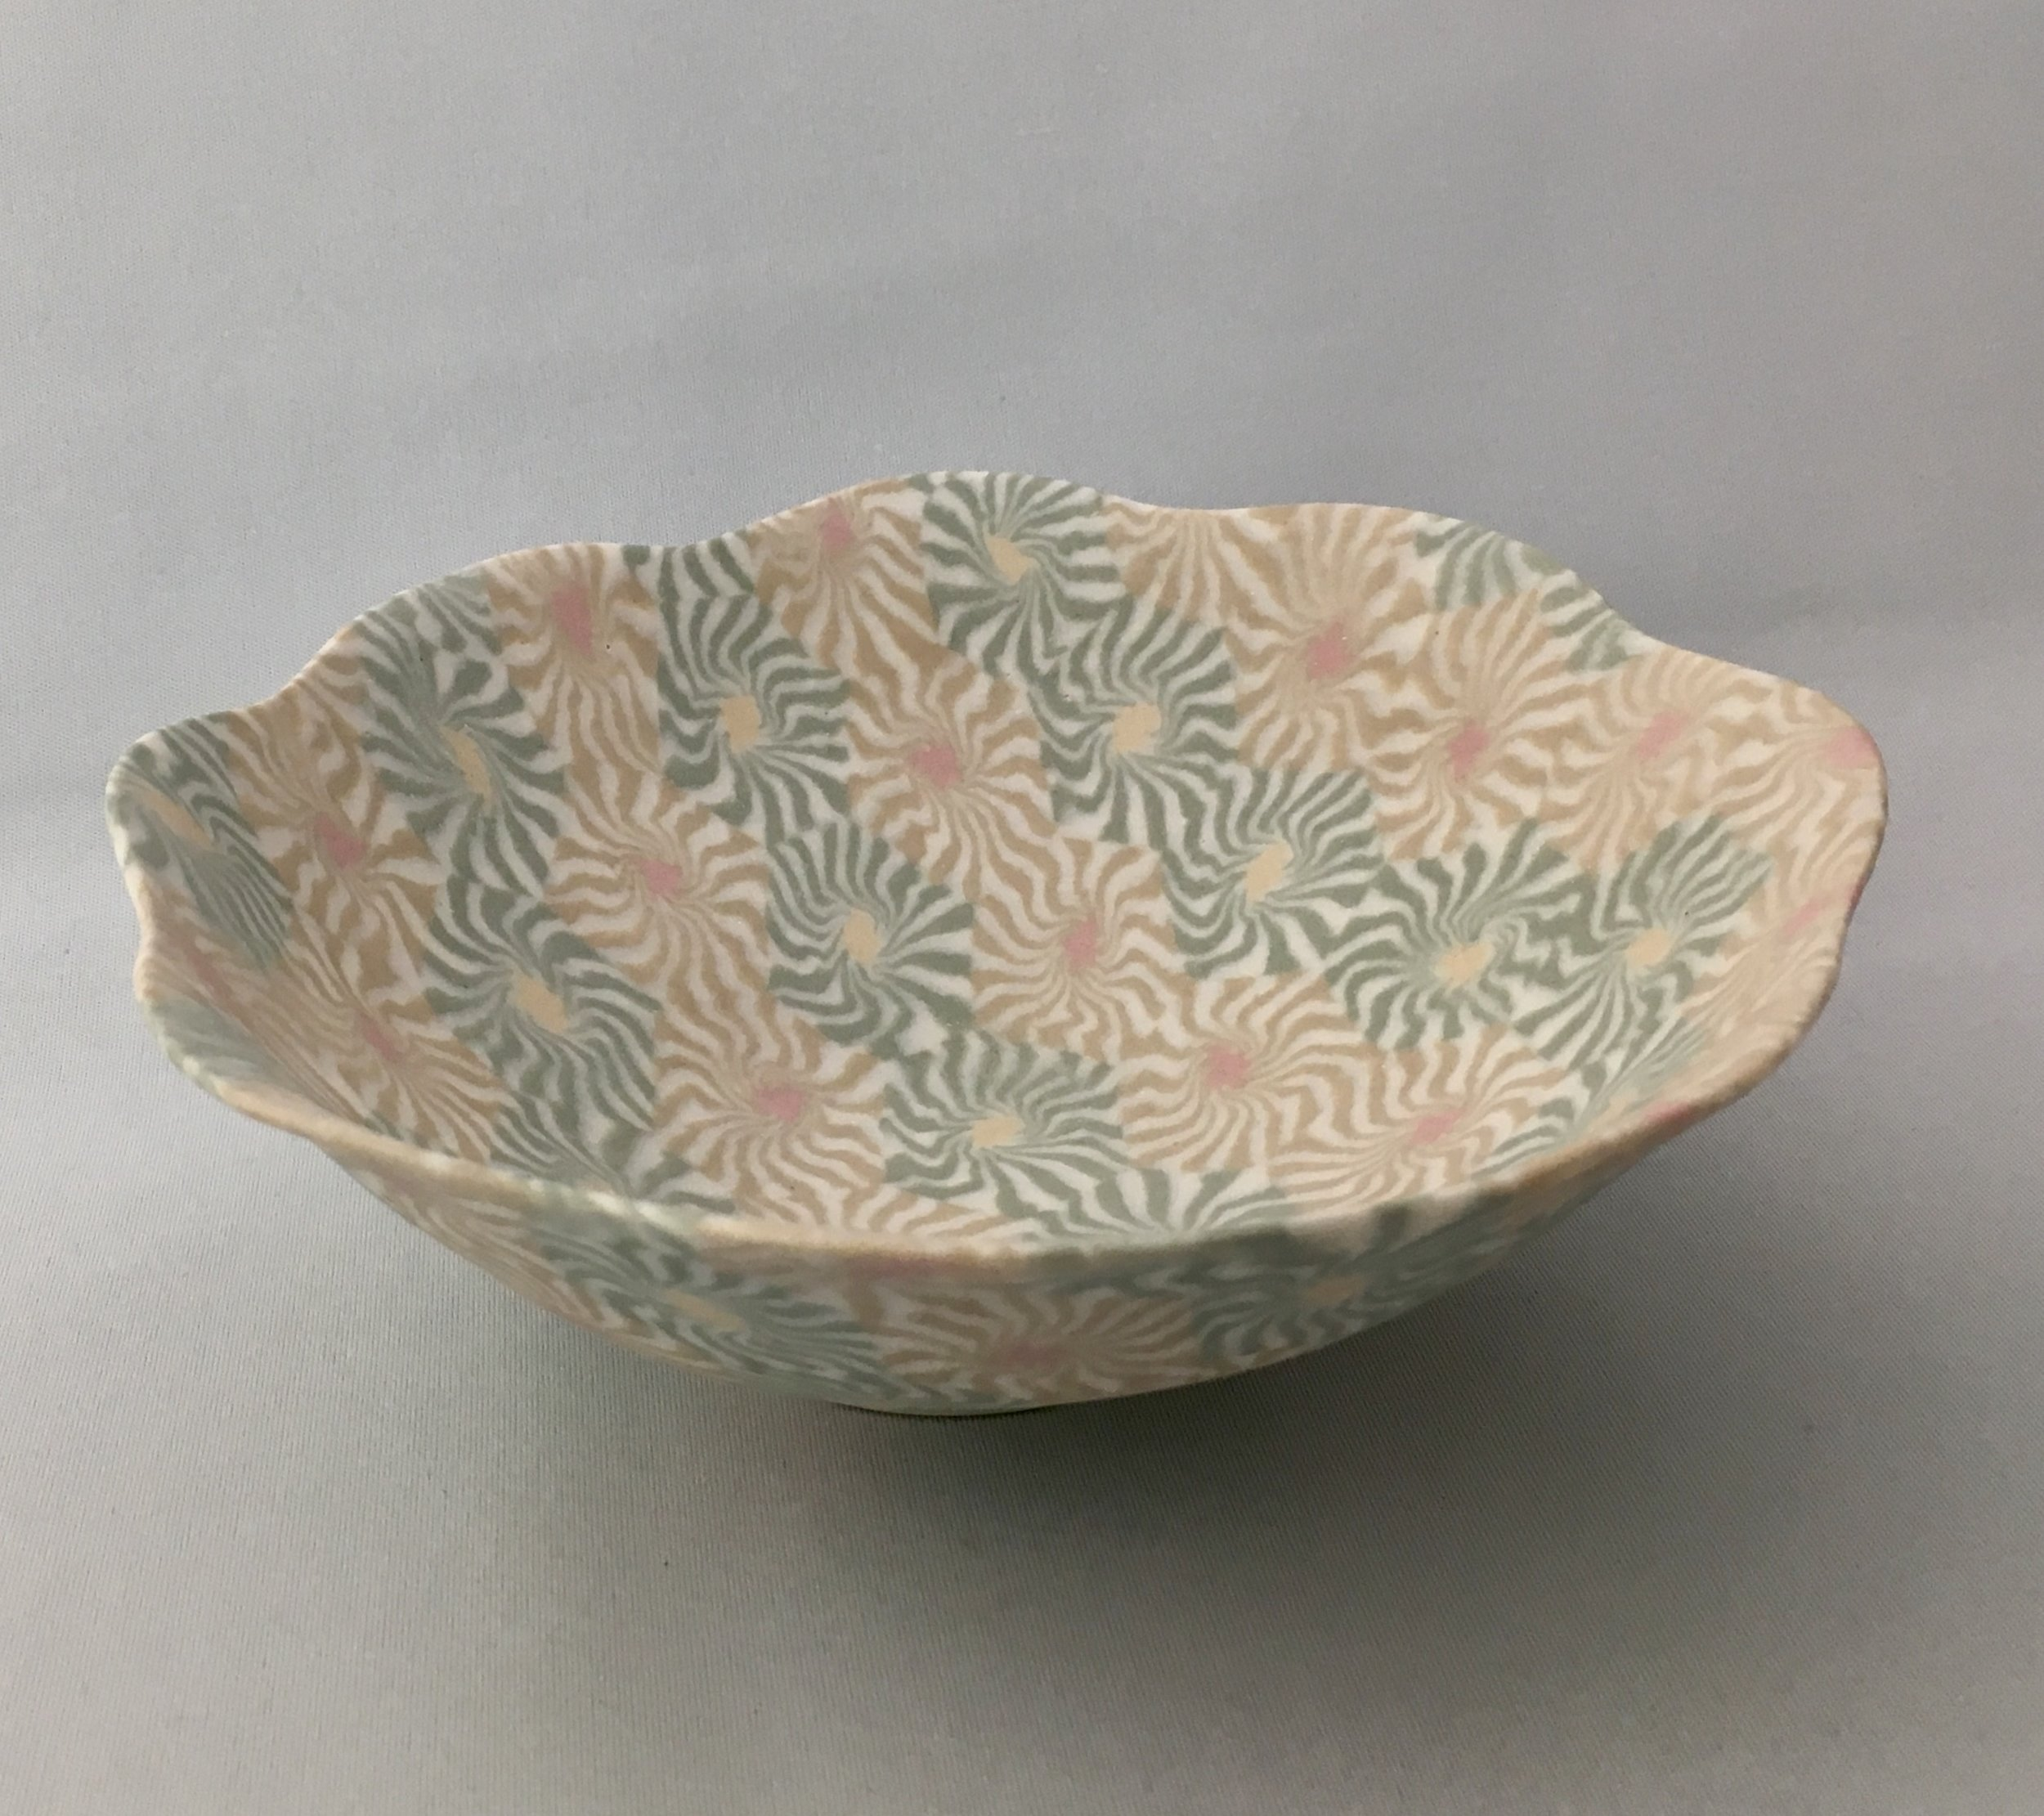 Eiko Maeda - Maeda works in nerikomi, a traditional Japanese hand-building technique that involves stacking, slicing, and re-forming coloured clay to form repeating patterns.